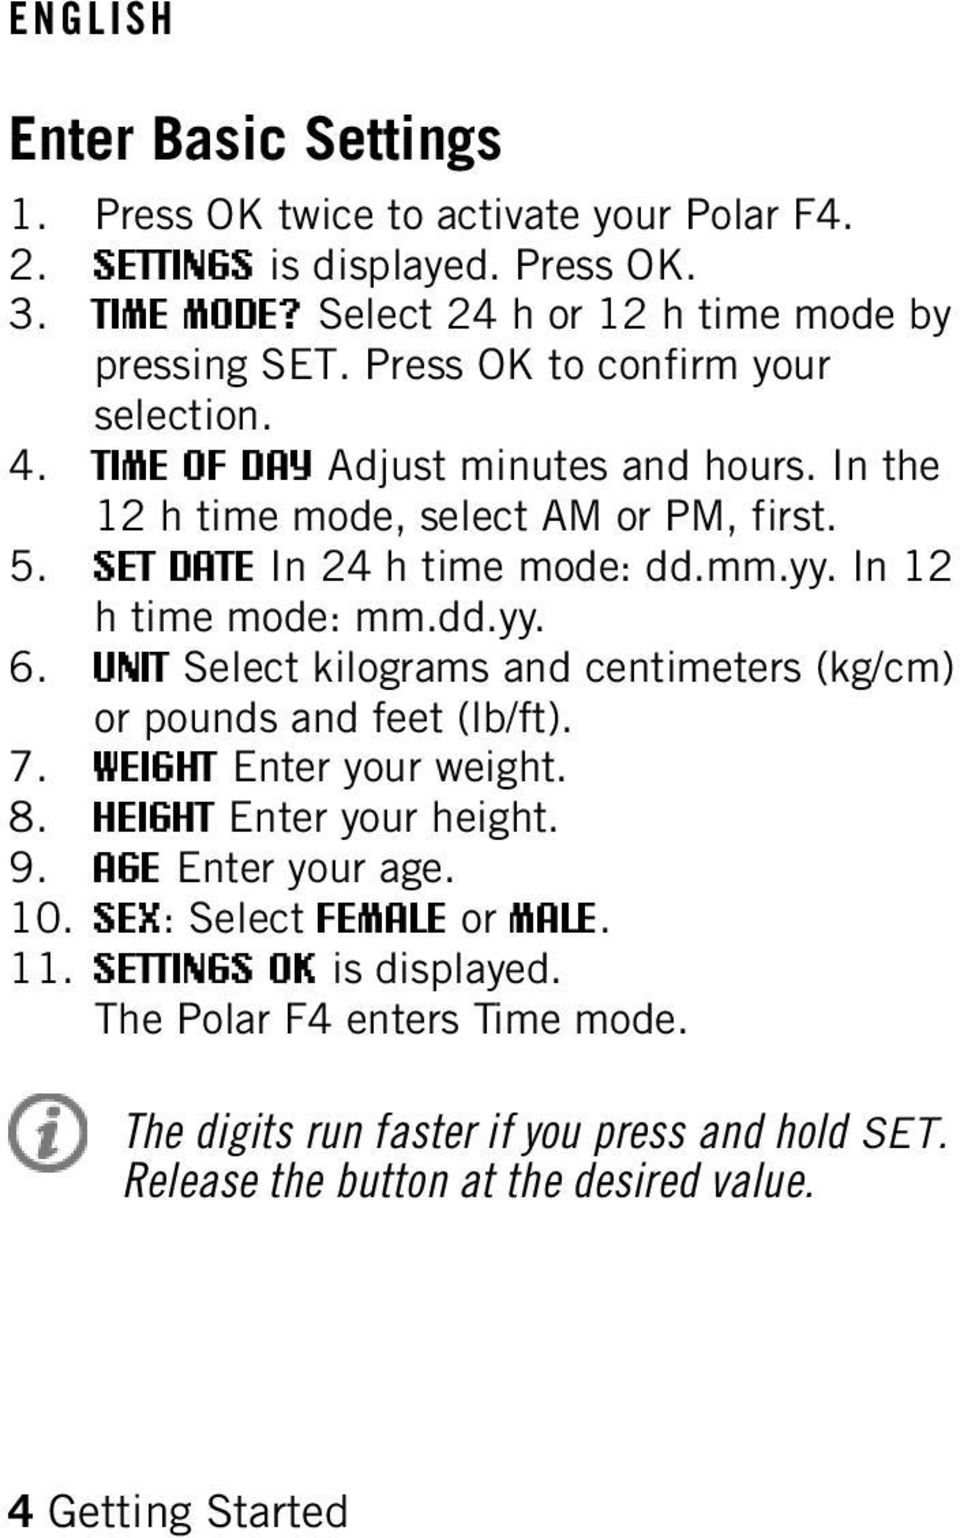 In 12 h time mode: mm.dd.yy. 6. UNIT Select kilograms and centimeters (kg/cm) or pounds and feet (lb/ft). 7. WEIGHT Enter your weight. 8. HEIGHT Enter your height. 9.